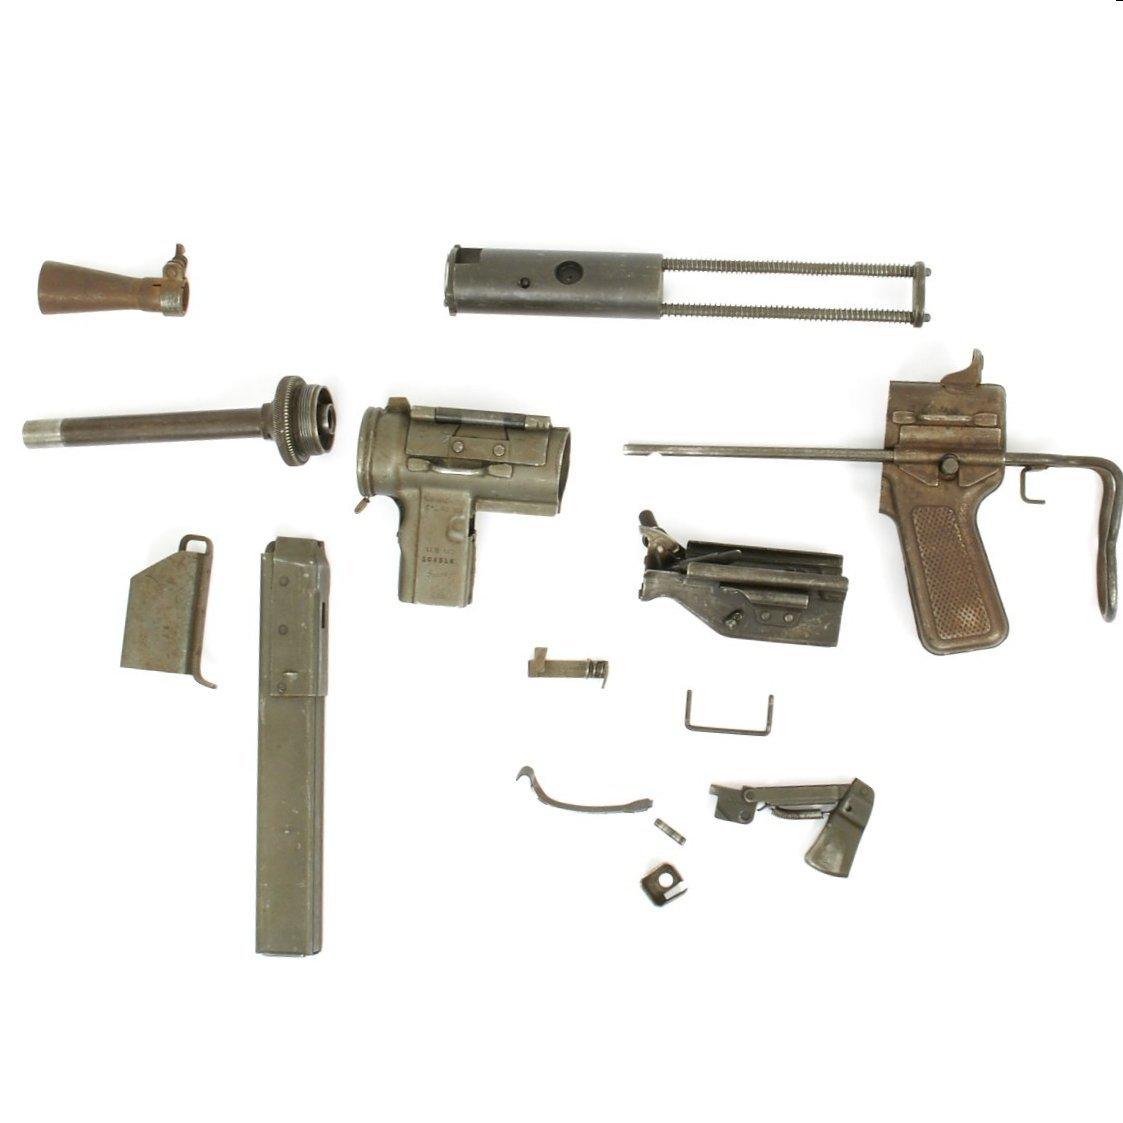 Original U S  WWII M3A1 Grease Gun Parts Set by Guide Lamp Compnay